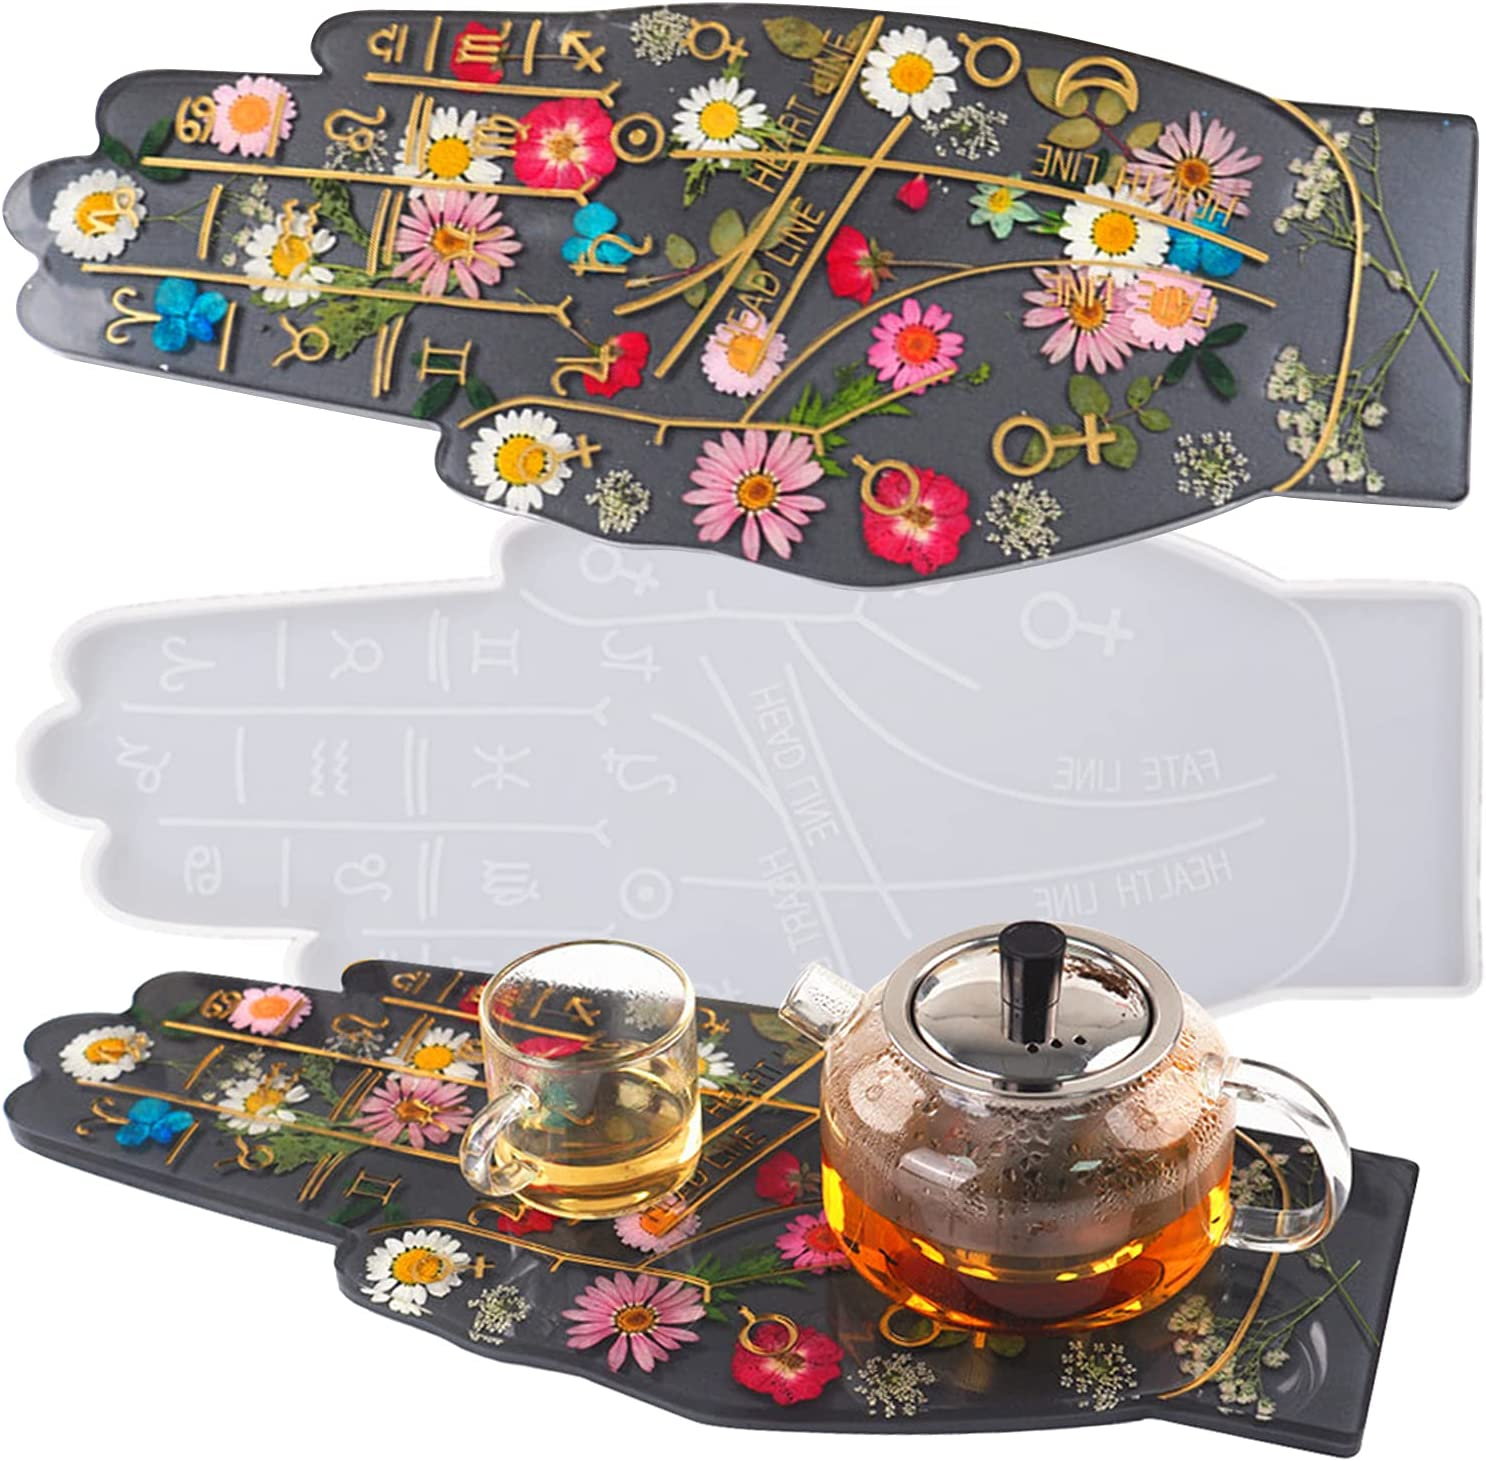 Large Resin Tray Mold Zodiac Hand Shaped Tray Silicone Mold for Resin Casting Irregular Serving Board Constellation Jewelry Dish Trinket Plate Resin Craft Mold Kit Home Decoration